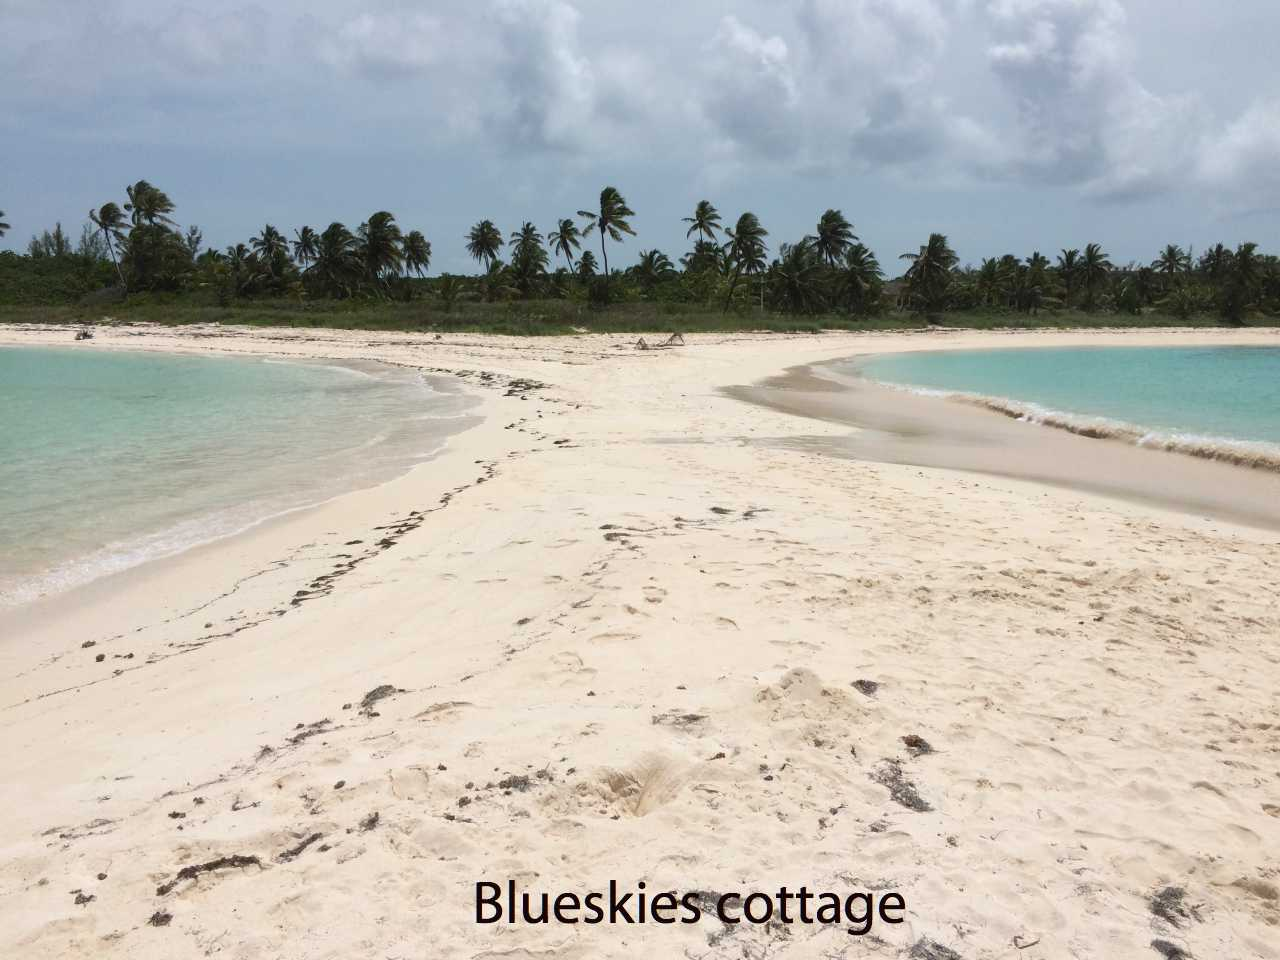 twin cove beach Eleuthera